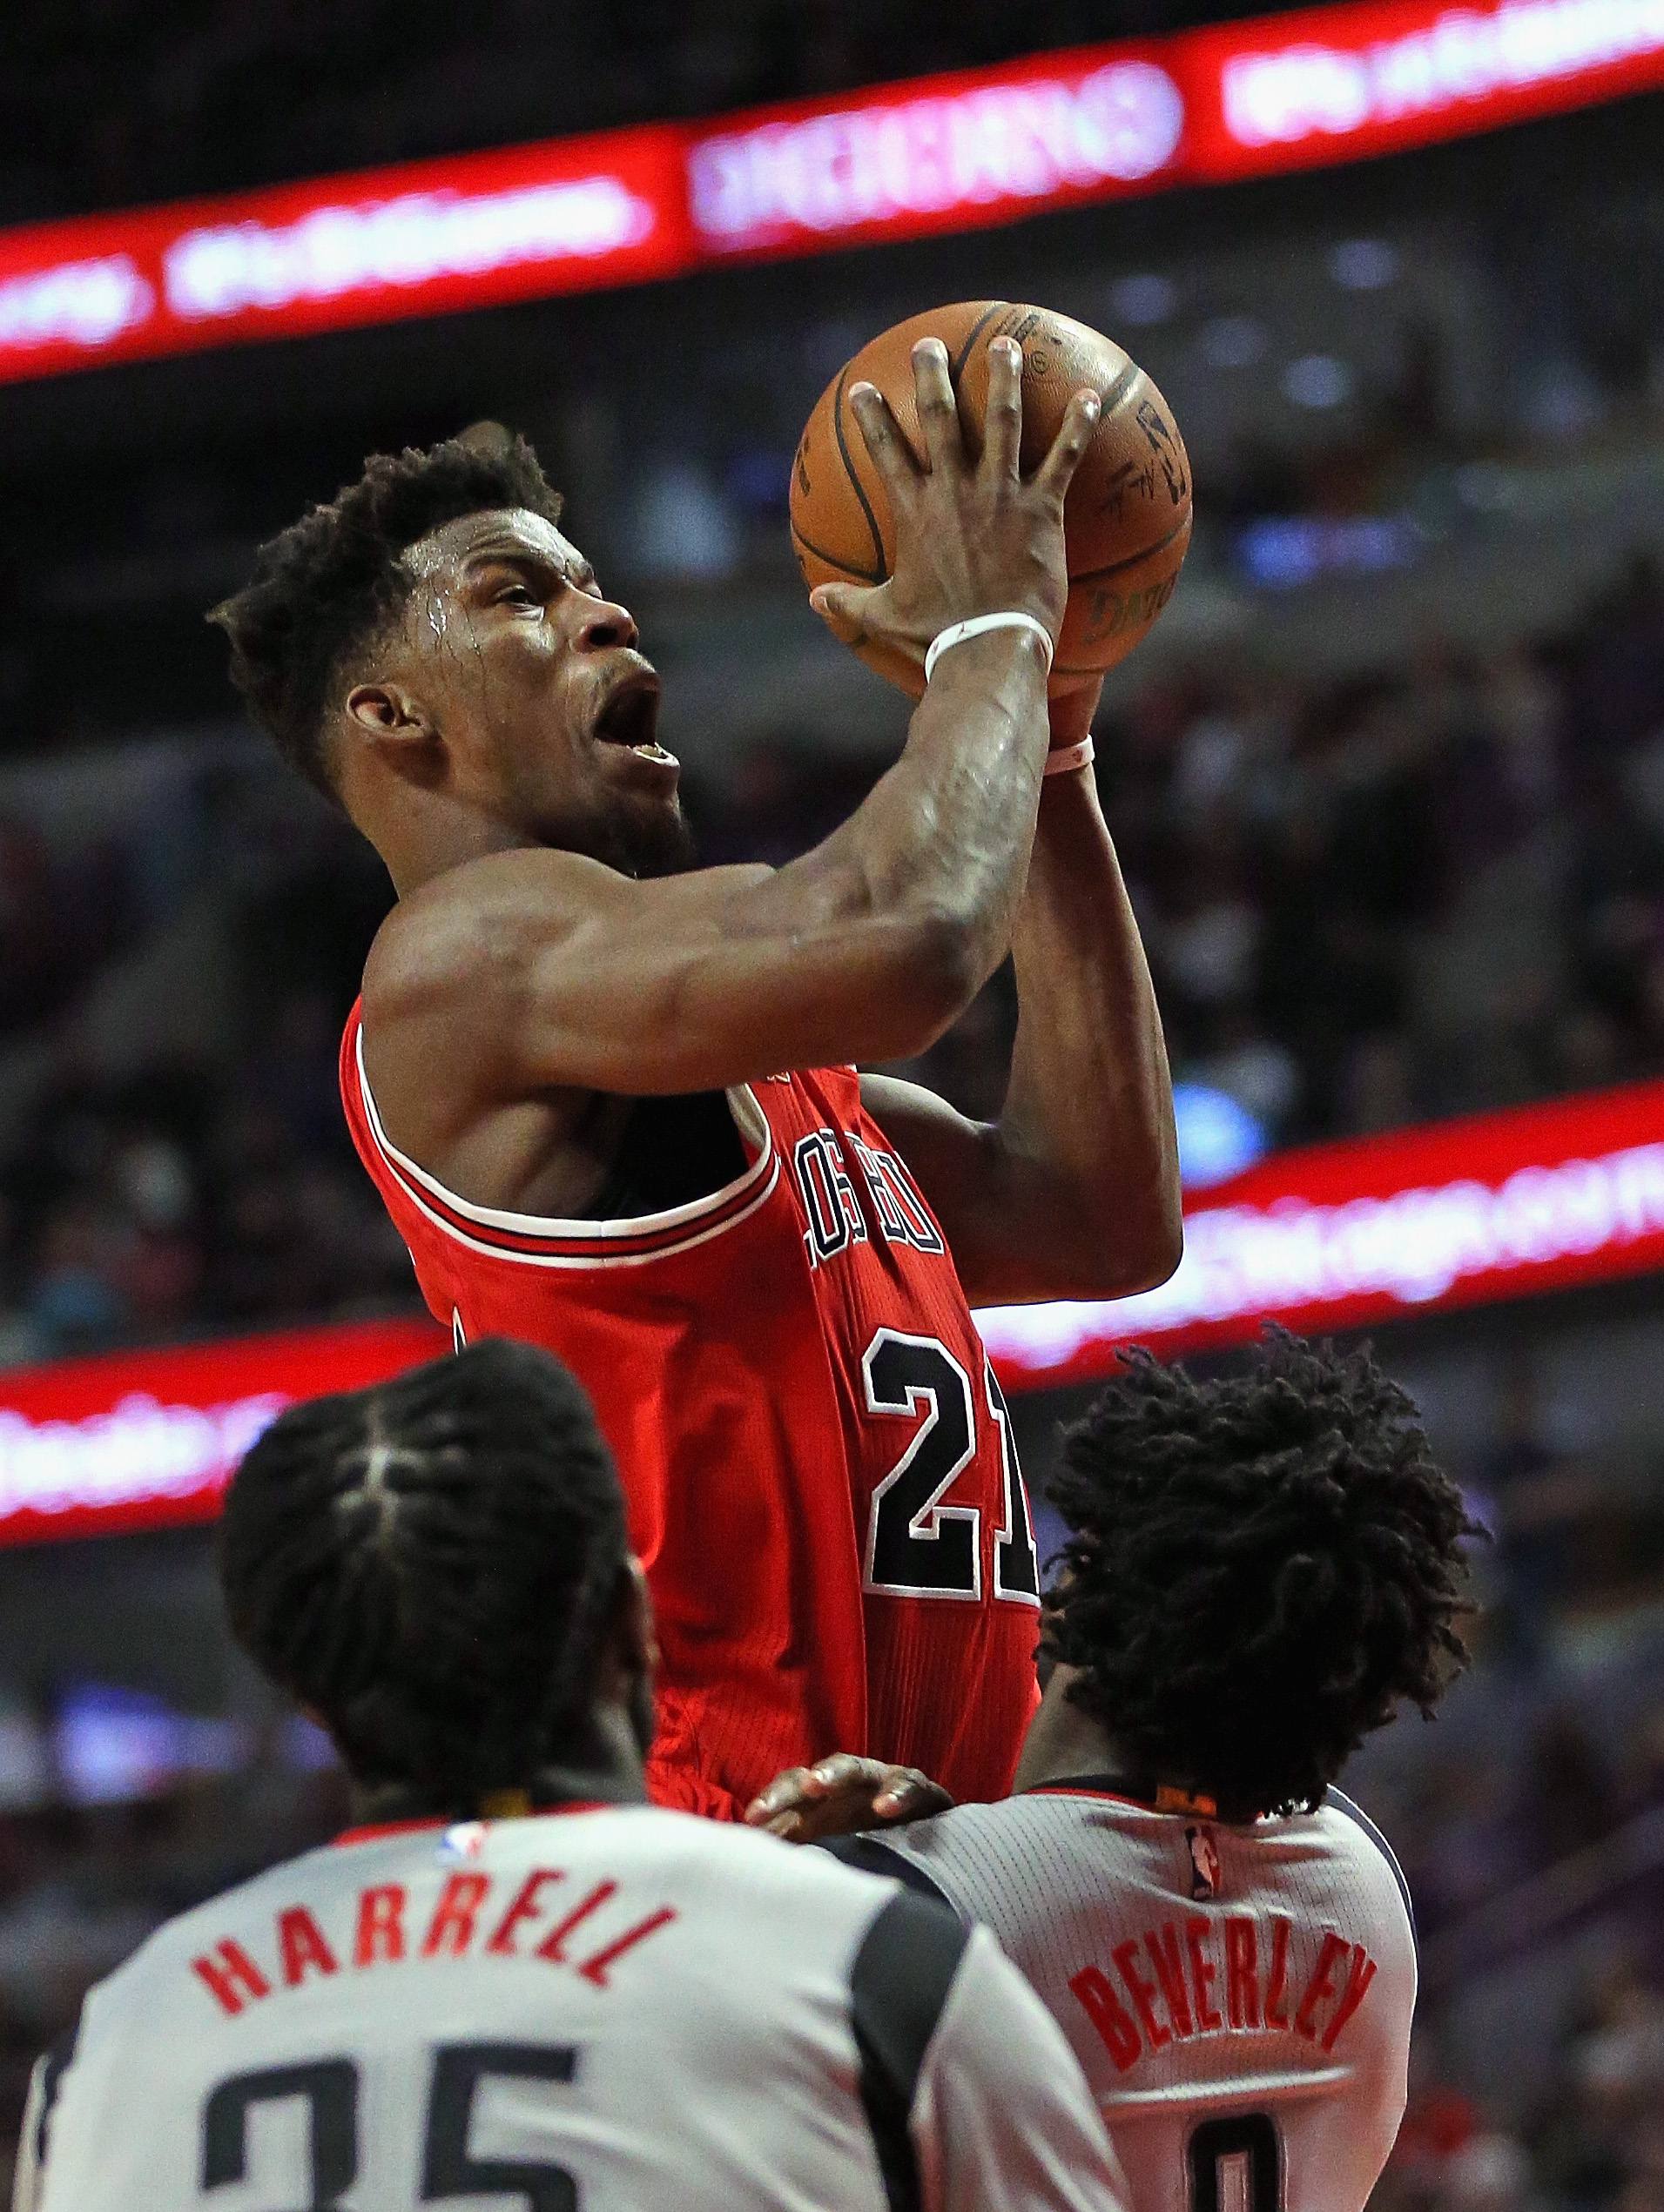 CHICAGO, IL - MARCH 05: Jimmy Butler #21 of the Chicago Bulls goes up for a shot but is called for a charge against Patrick Beverley #2 of the Houston Rockets at the United Center on March 5, 2016 in Chicago, Illinois. The Bulls defeated the Rockets 108-1